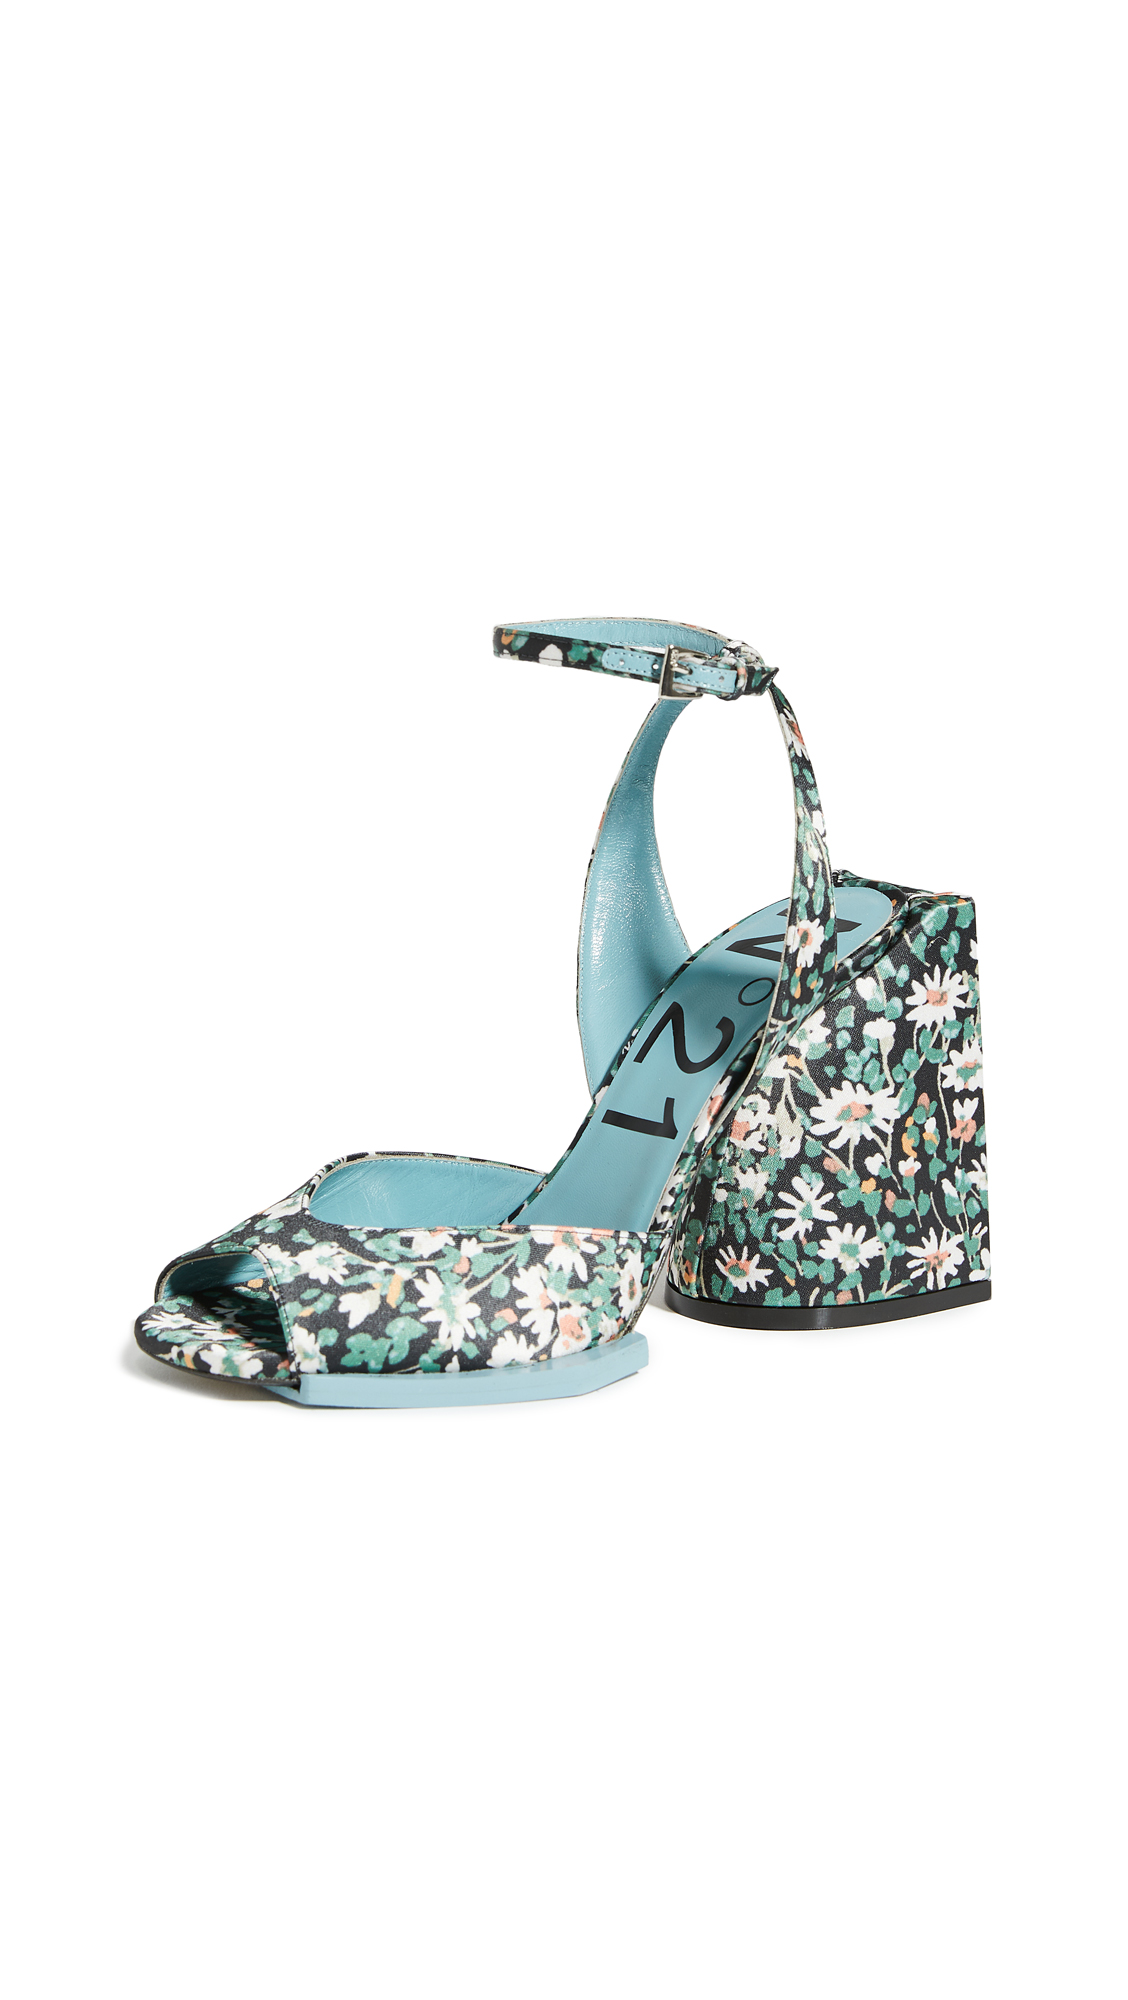 No. 21 Floral Sandals – 40% Off Sale